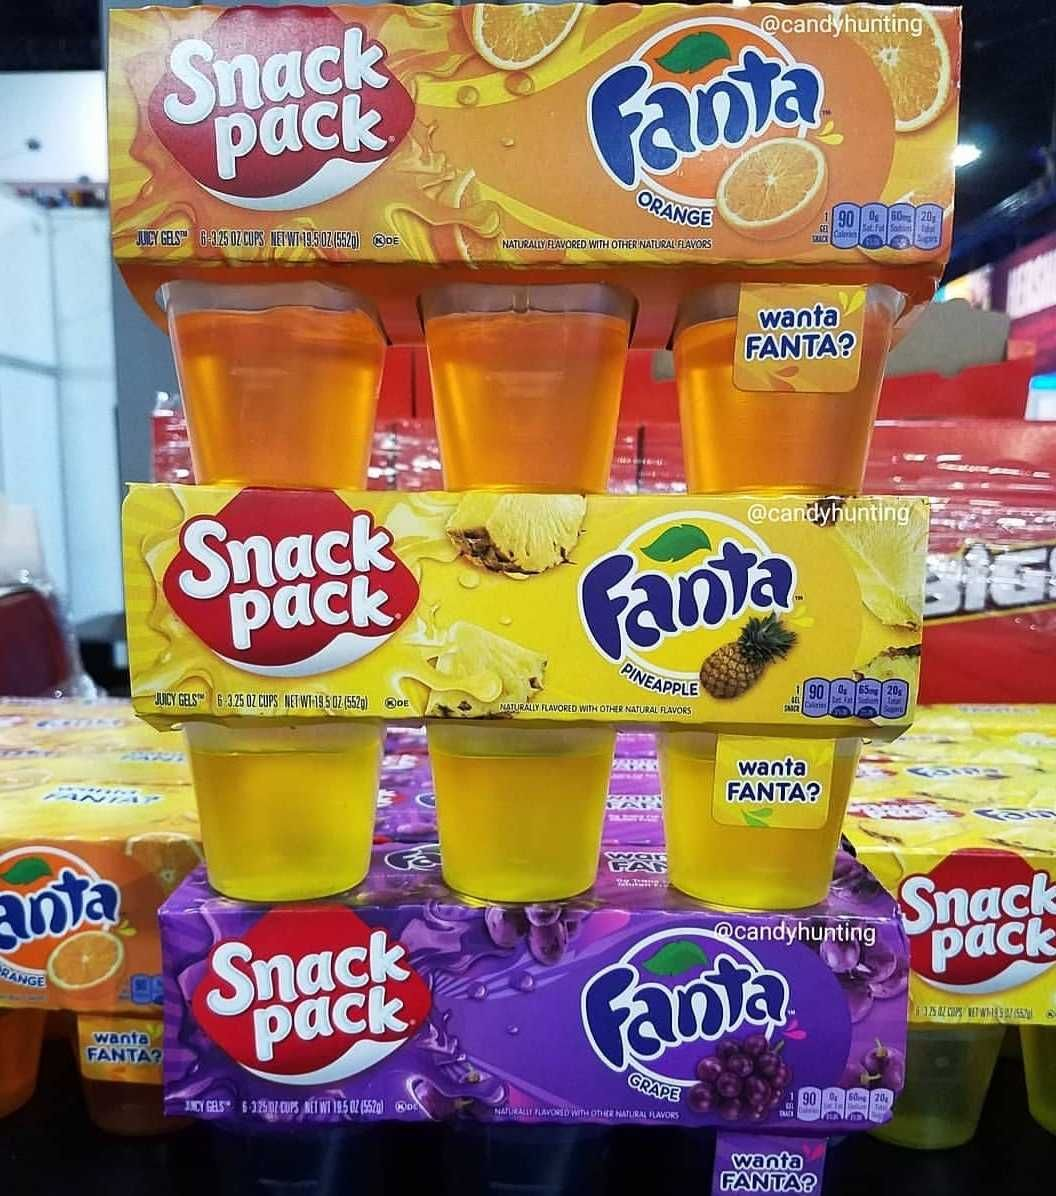 Fanta Snack Packs Are Coming To Stores Soon And I Already Have A Sugar Rush